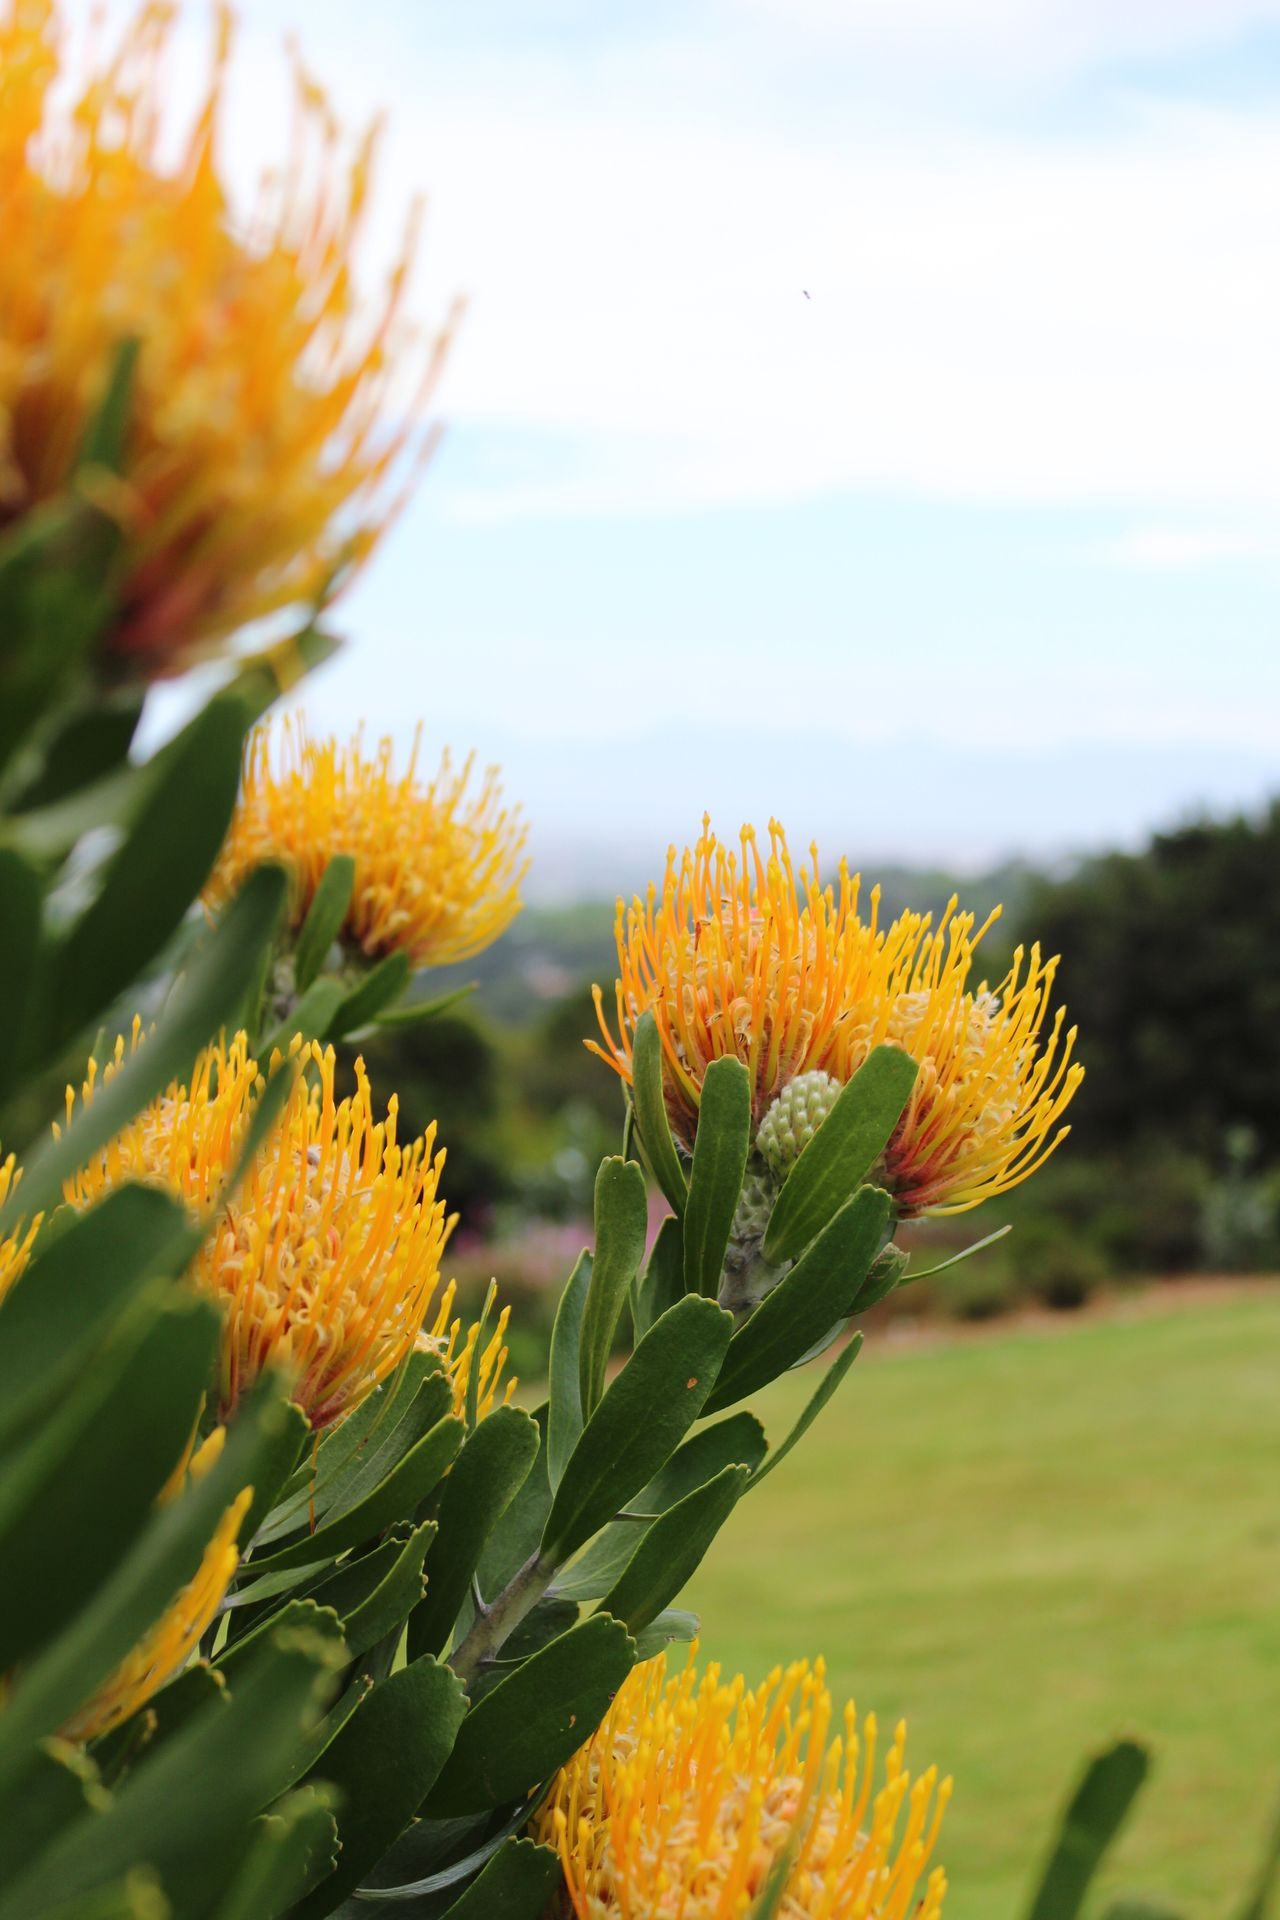 Protea Gold Dust Kirstenbosch South Africa Flowers Flower Flowers,Plants & Garden Africa Cape Town Protea Flower Flower Head Flower Collection Flower Photography Yellow Flower Yellow Green